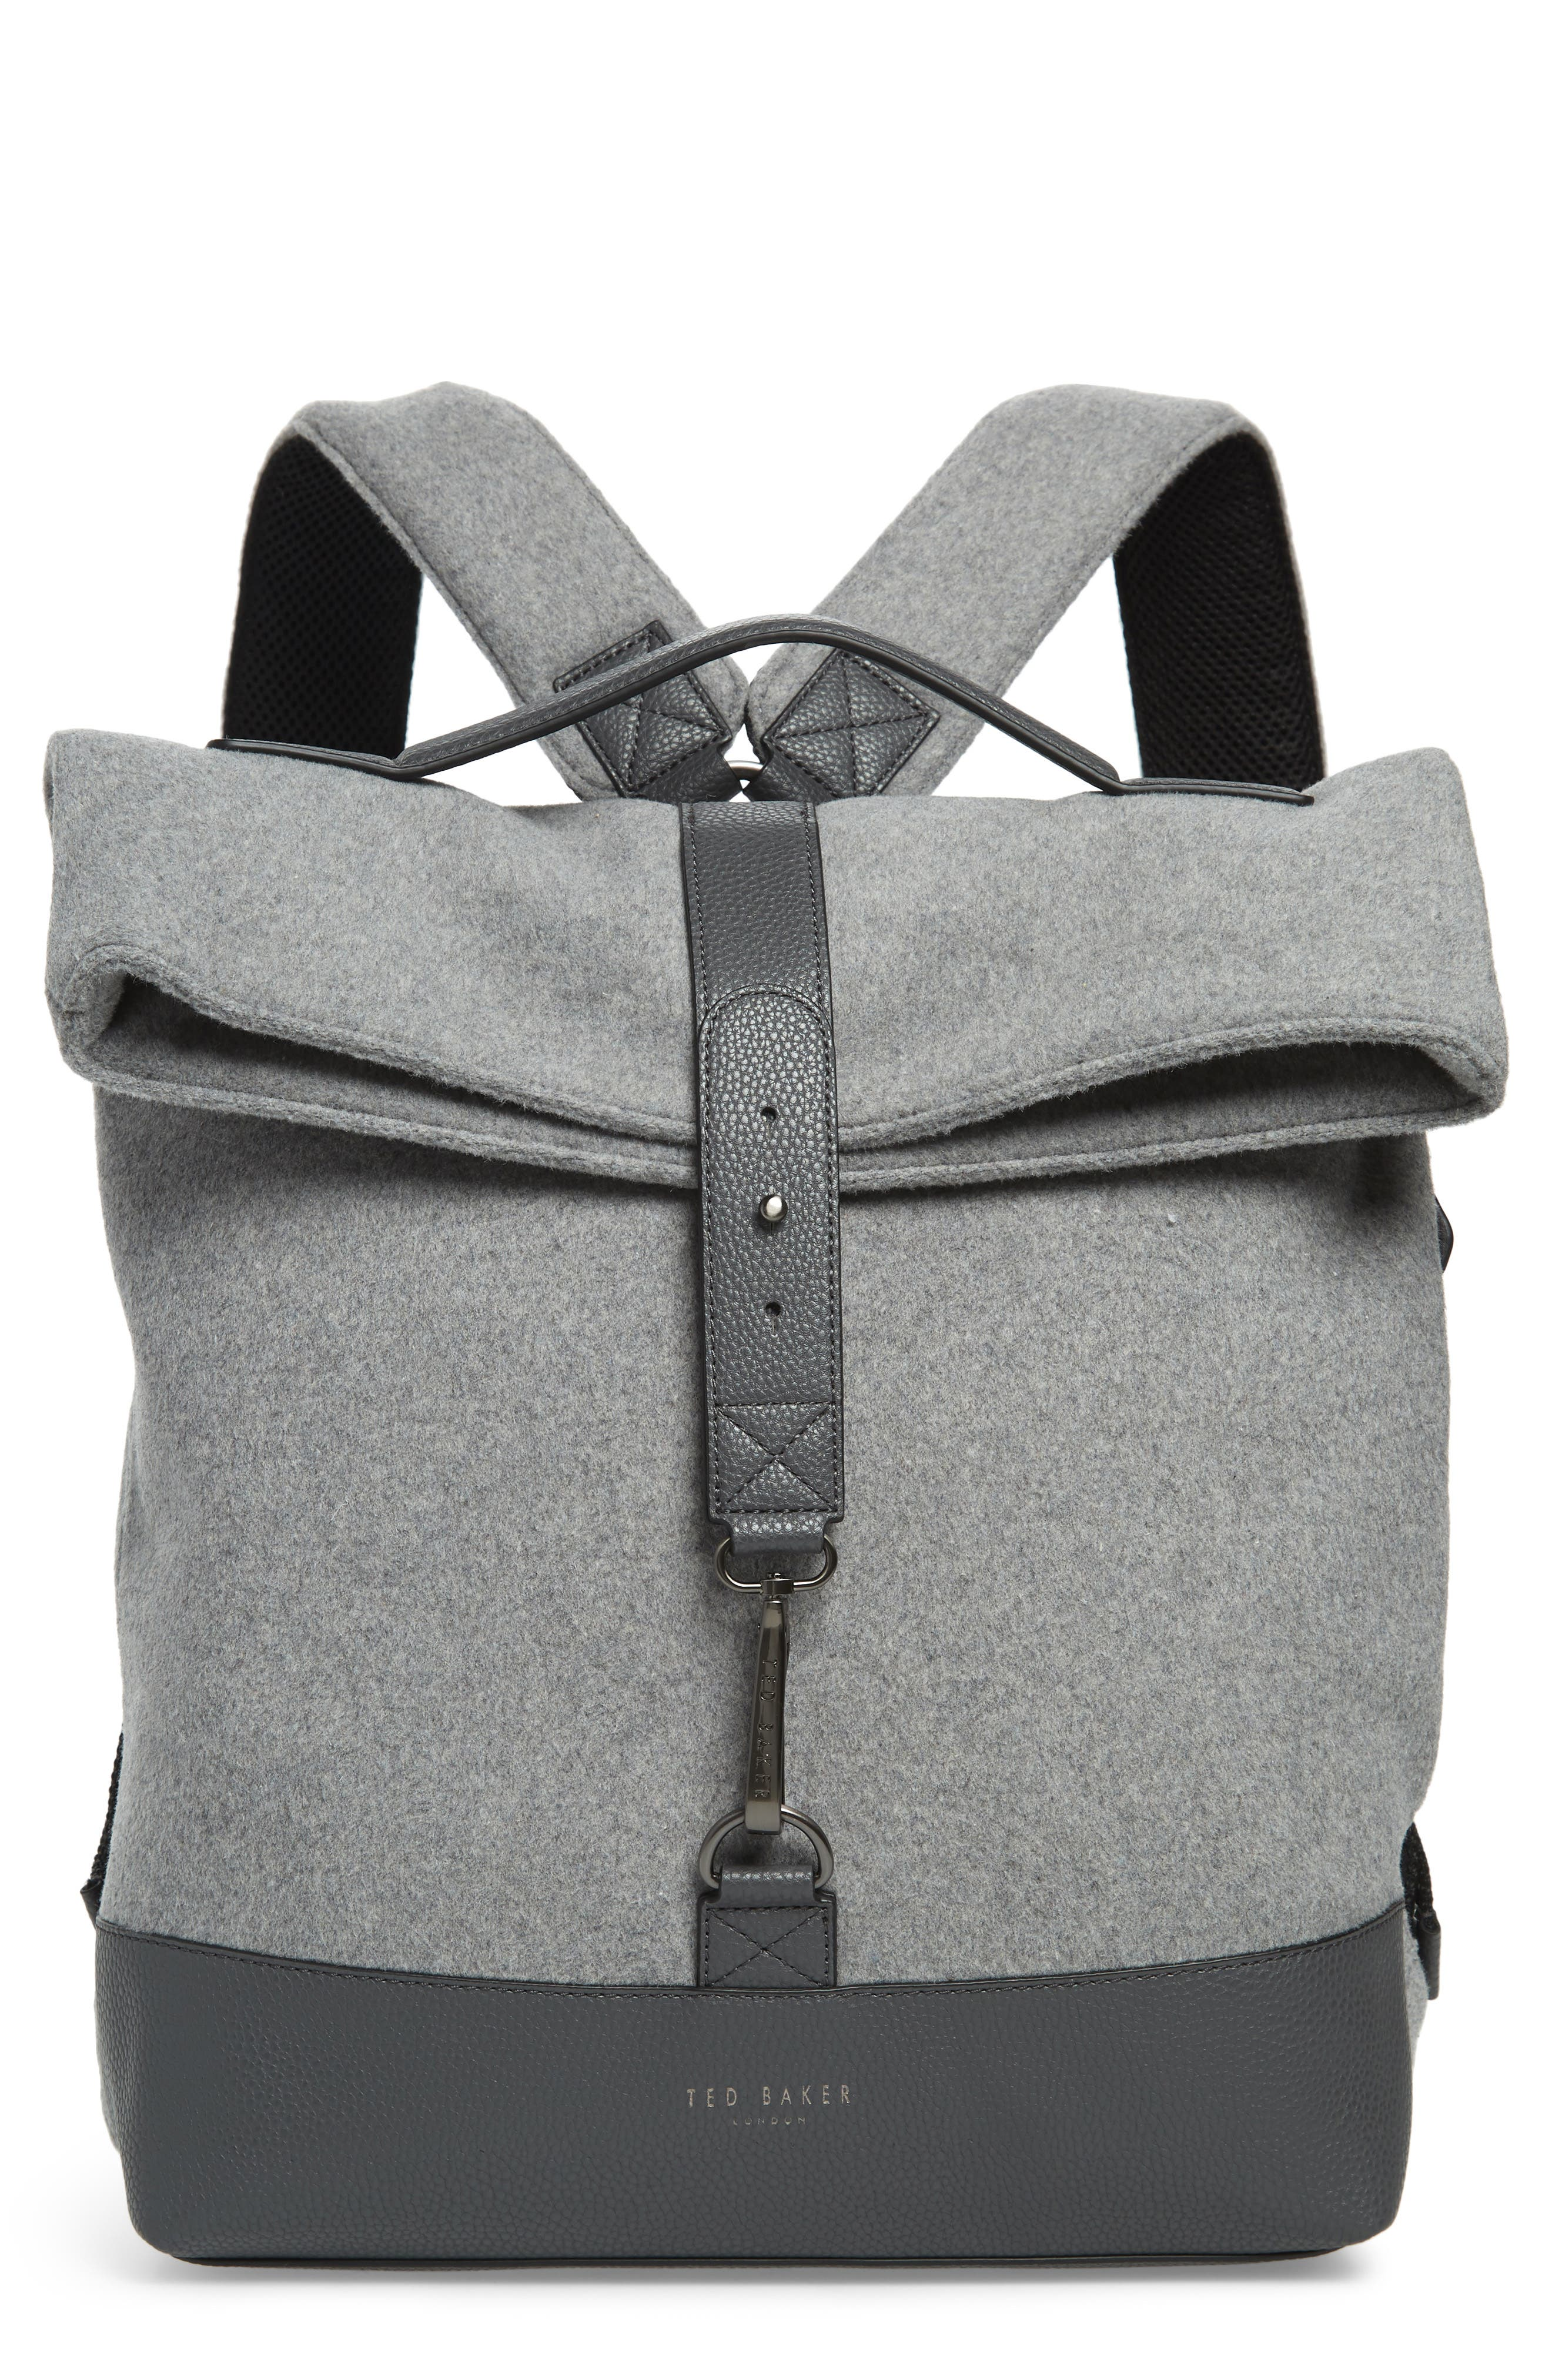 Cashed Backpack,                             Main thumbnail 1, color,